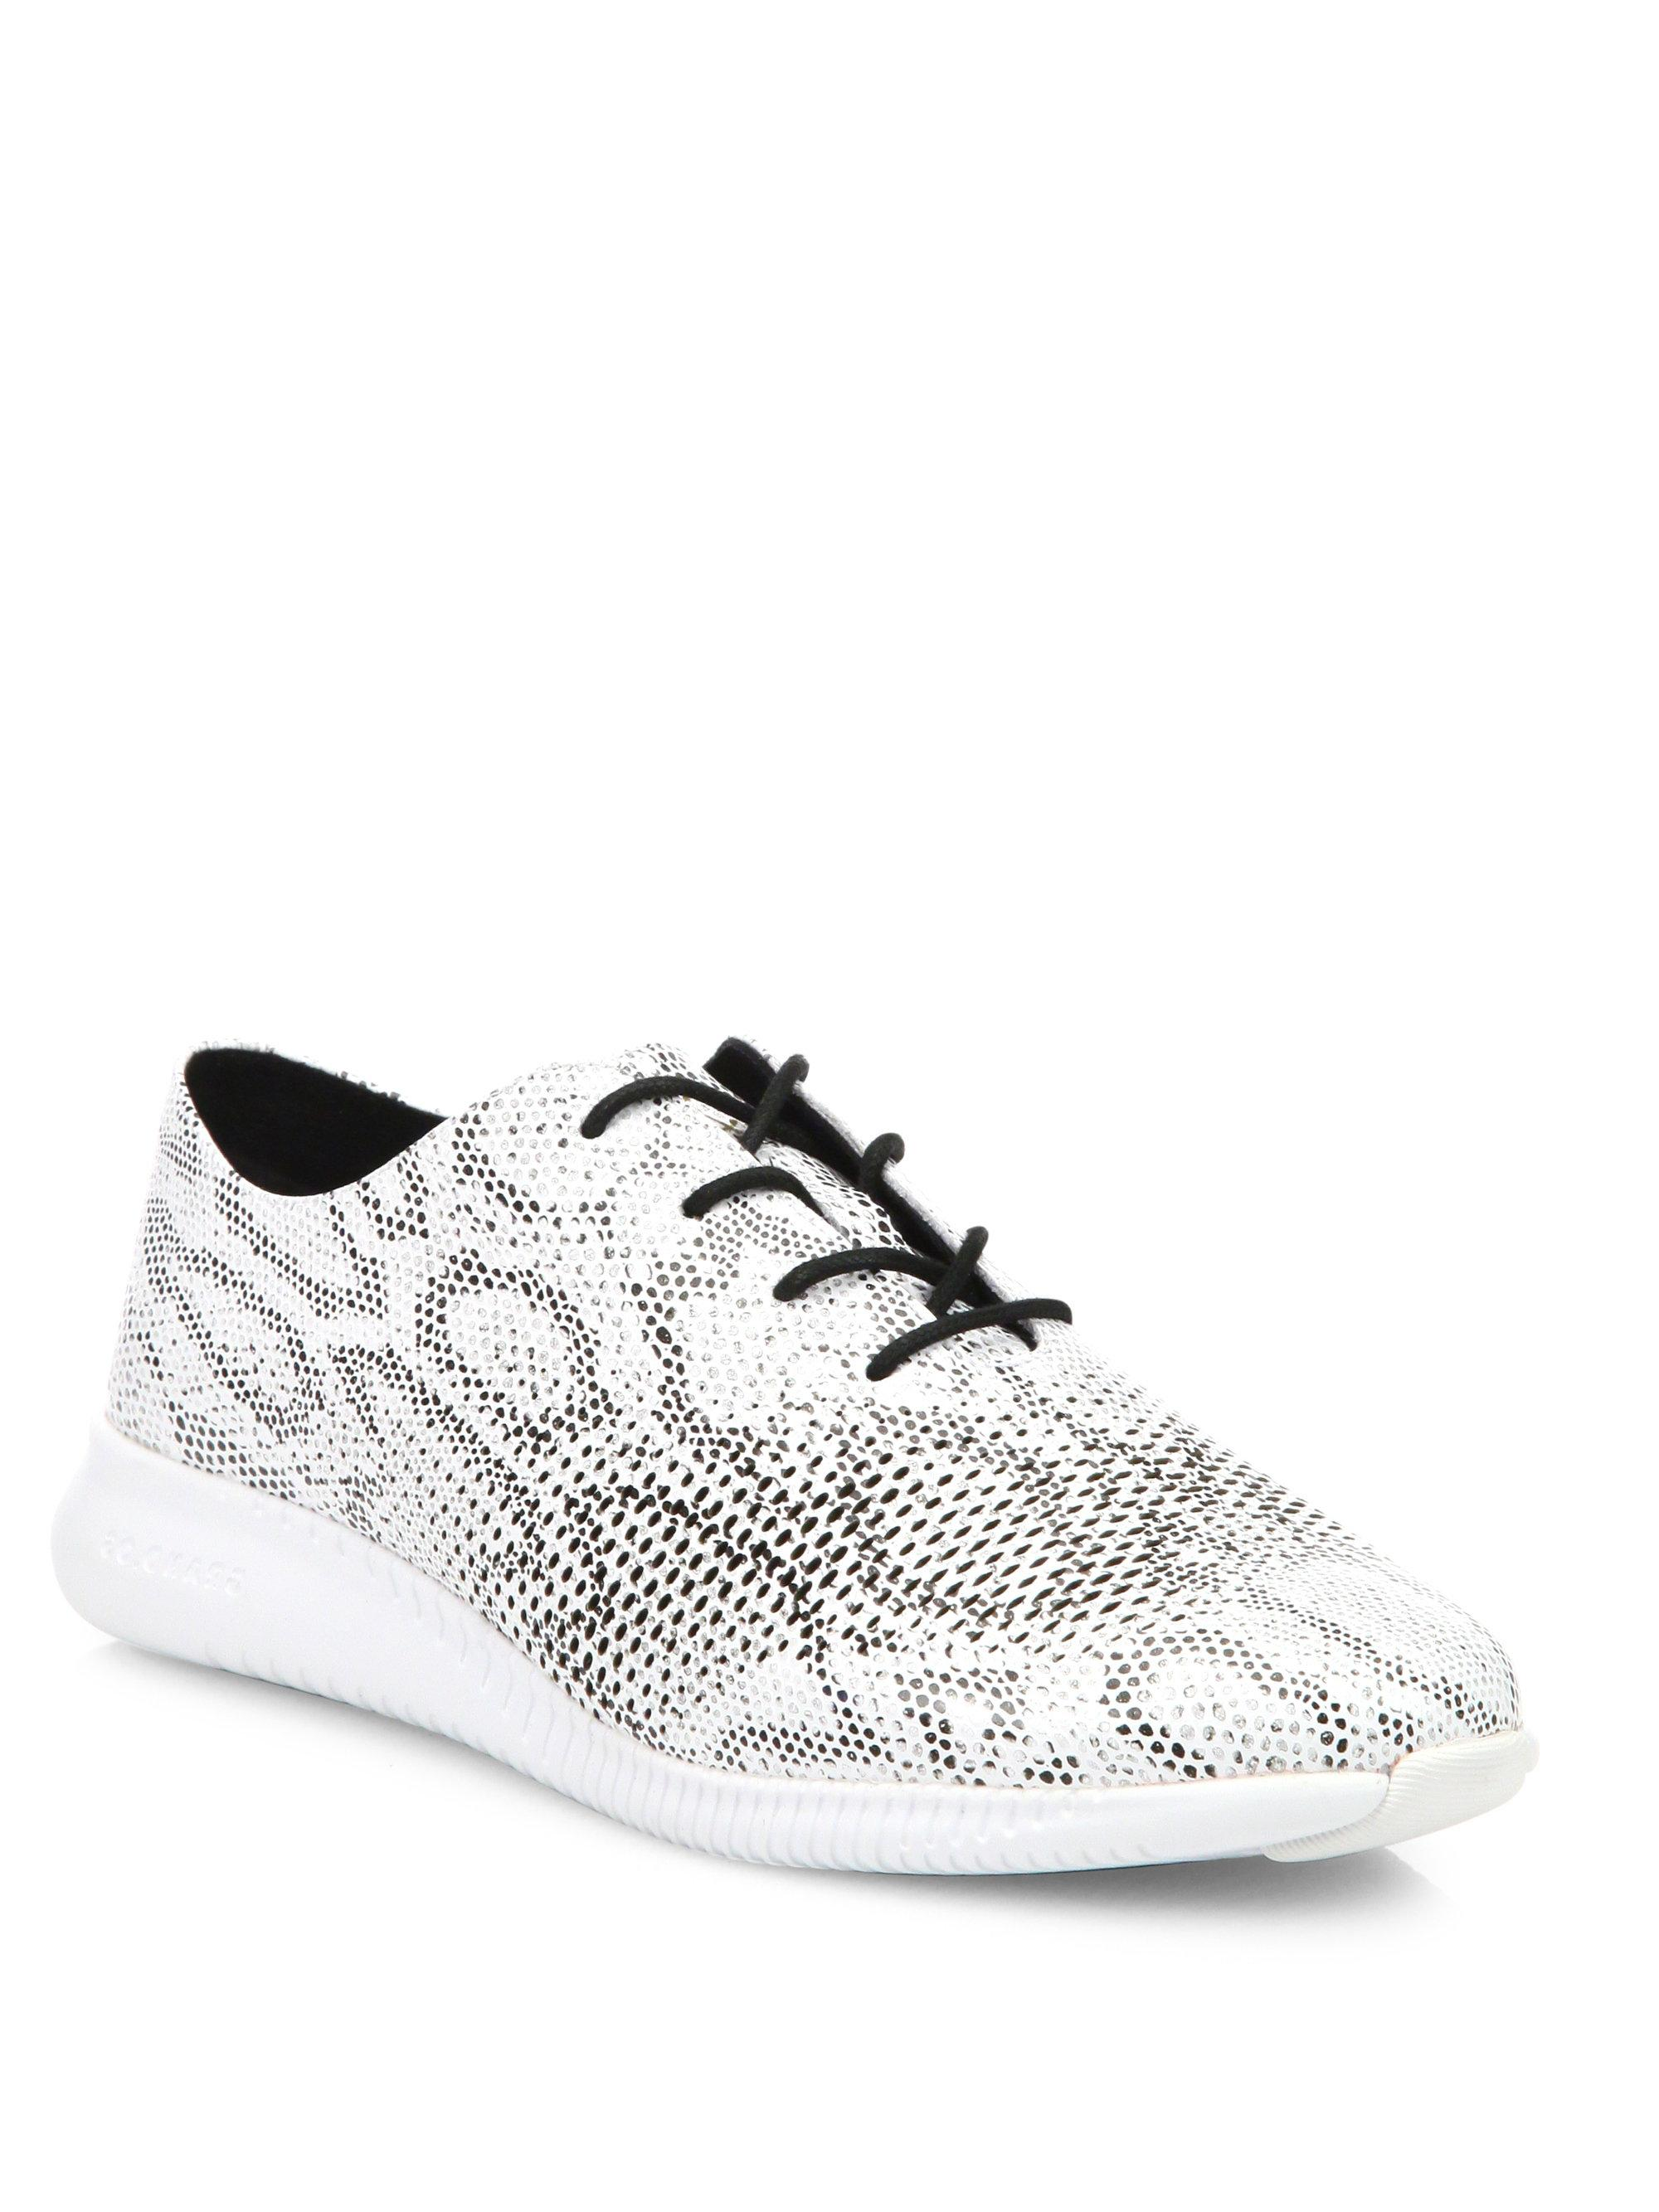 Cole haan Zer? Grand Snake-print Leather Oxford Sneakers